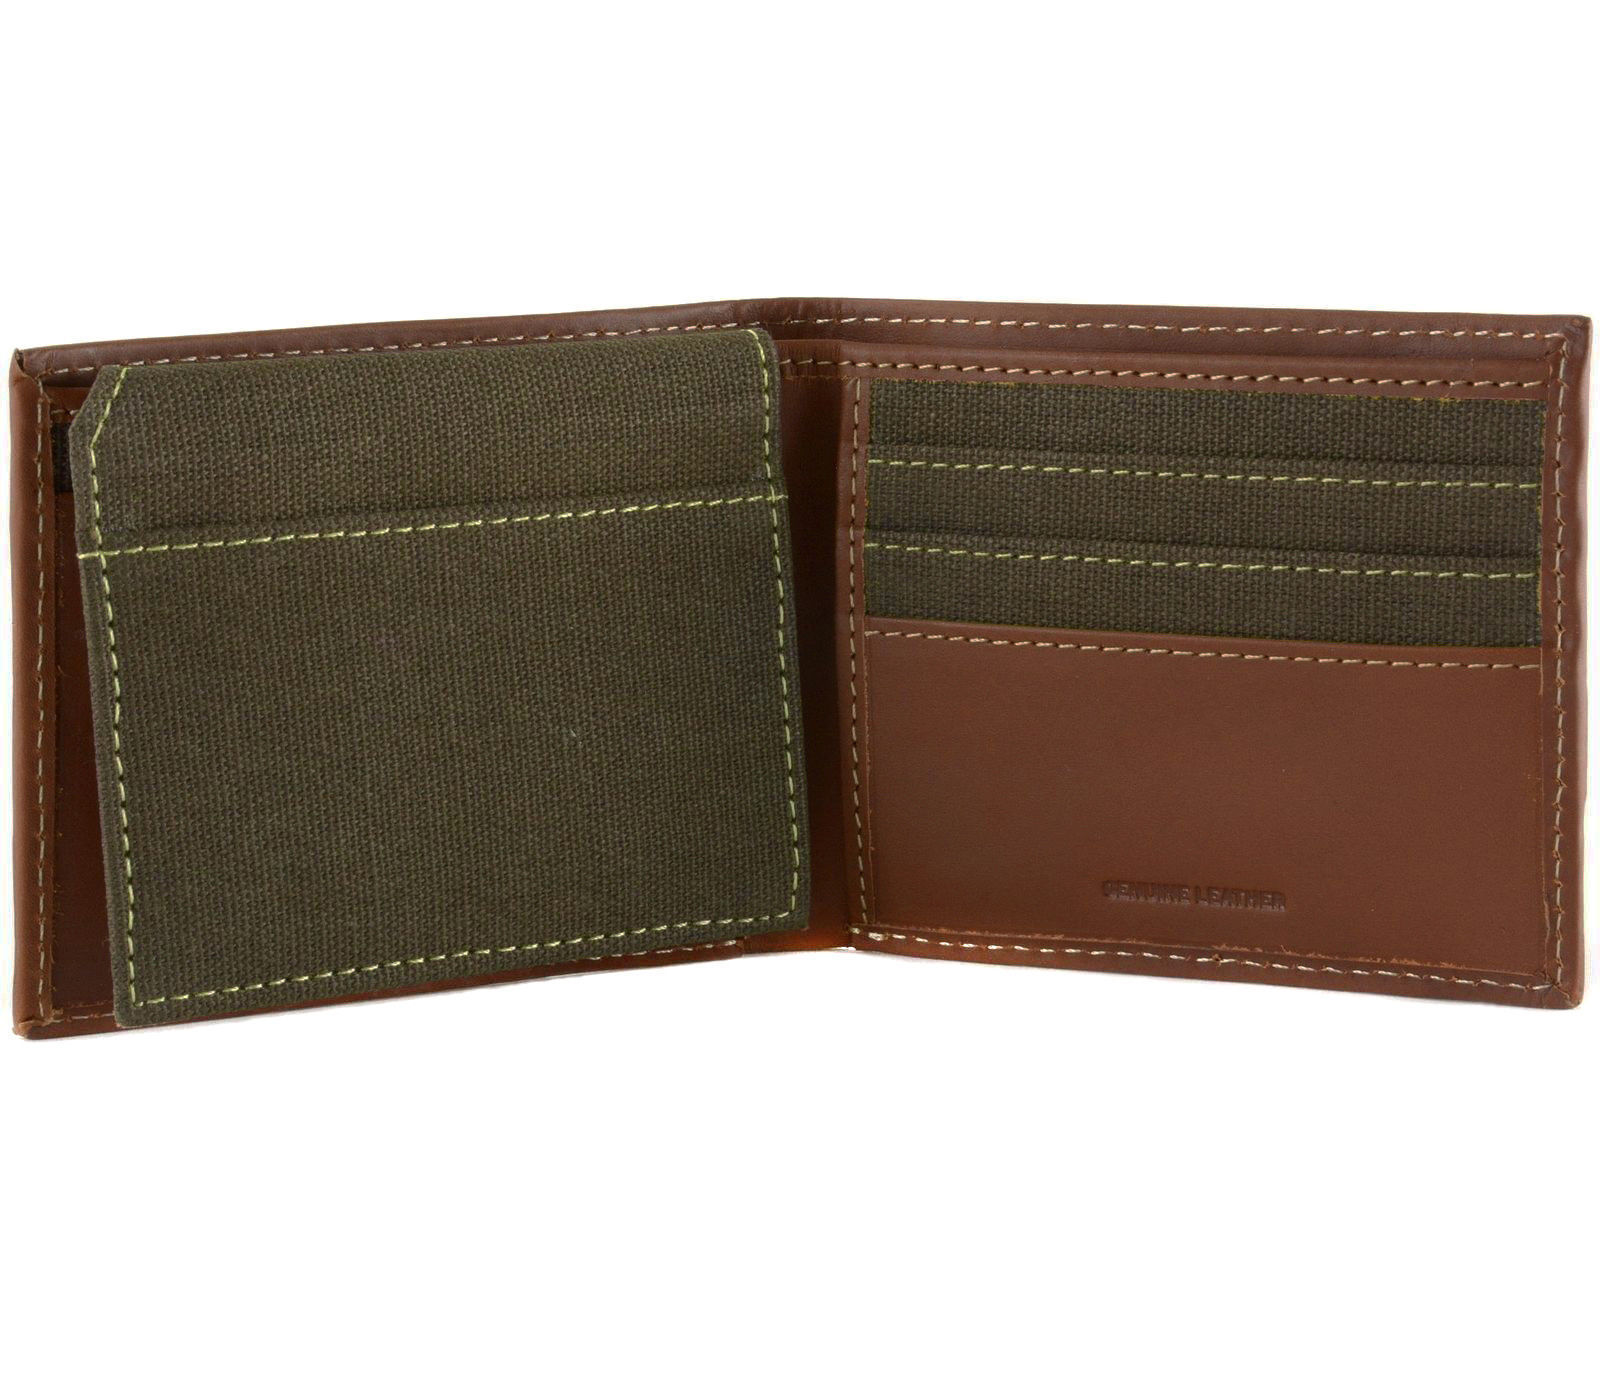 Timberland Men's Hunter Leather Canvas Credit Card ID Wallet NEW WITH DEFECTS